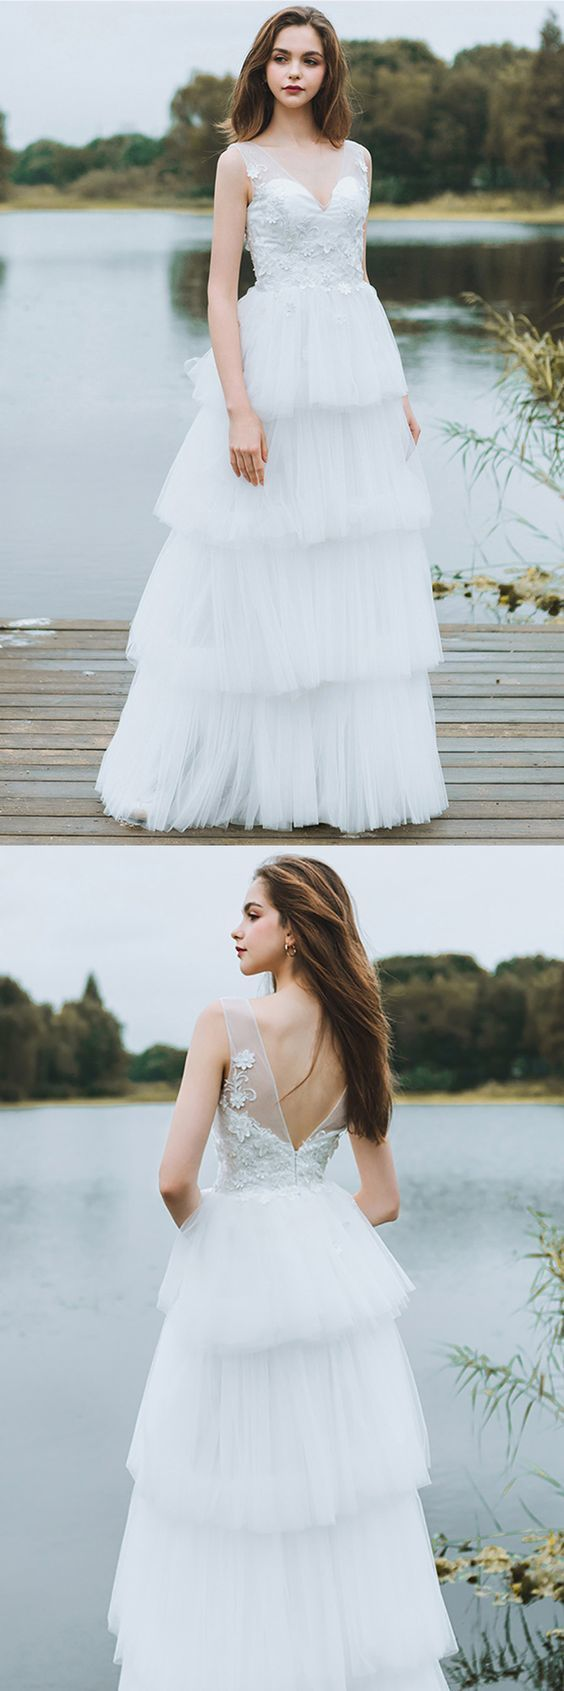 Sexy Tulle White Wedding Dress, Appliques Wedding Gowns, Lovely Bridal Dresses